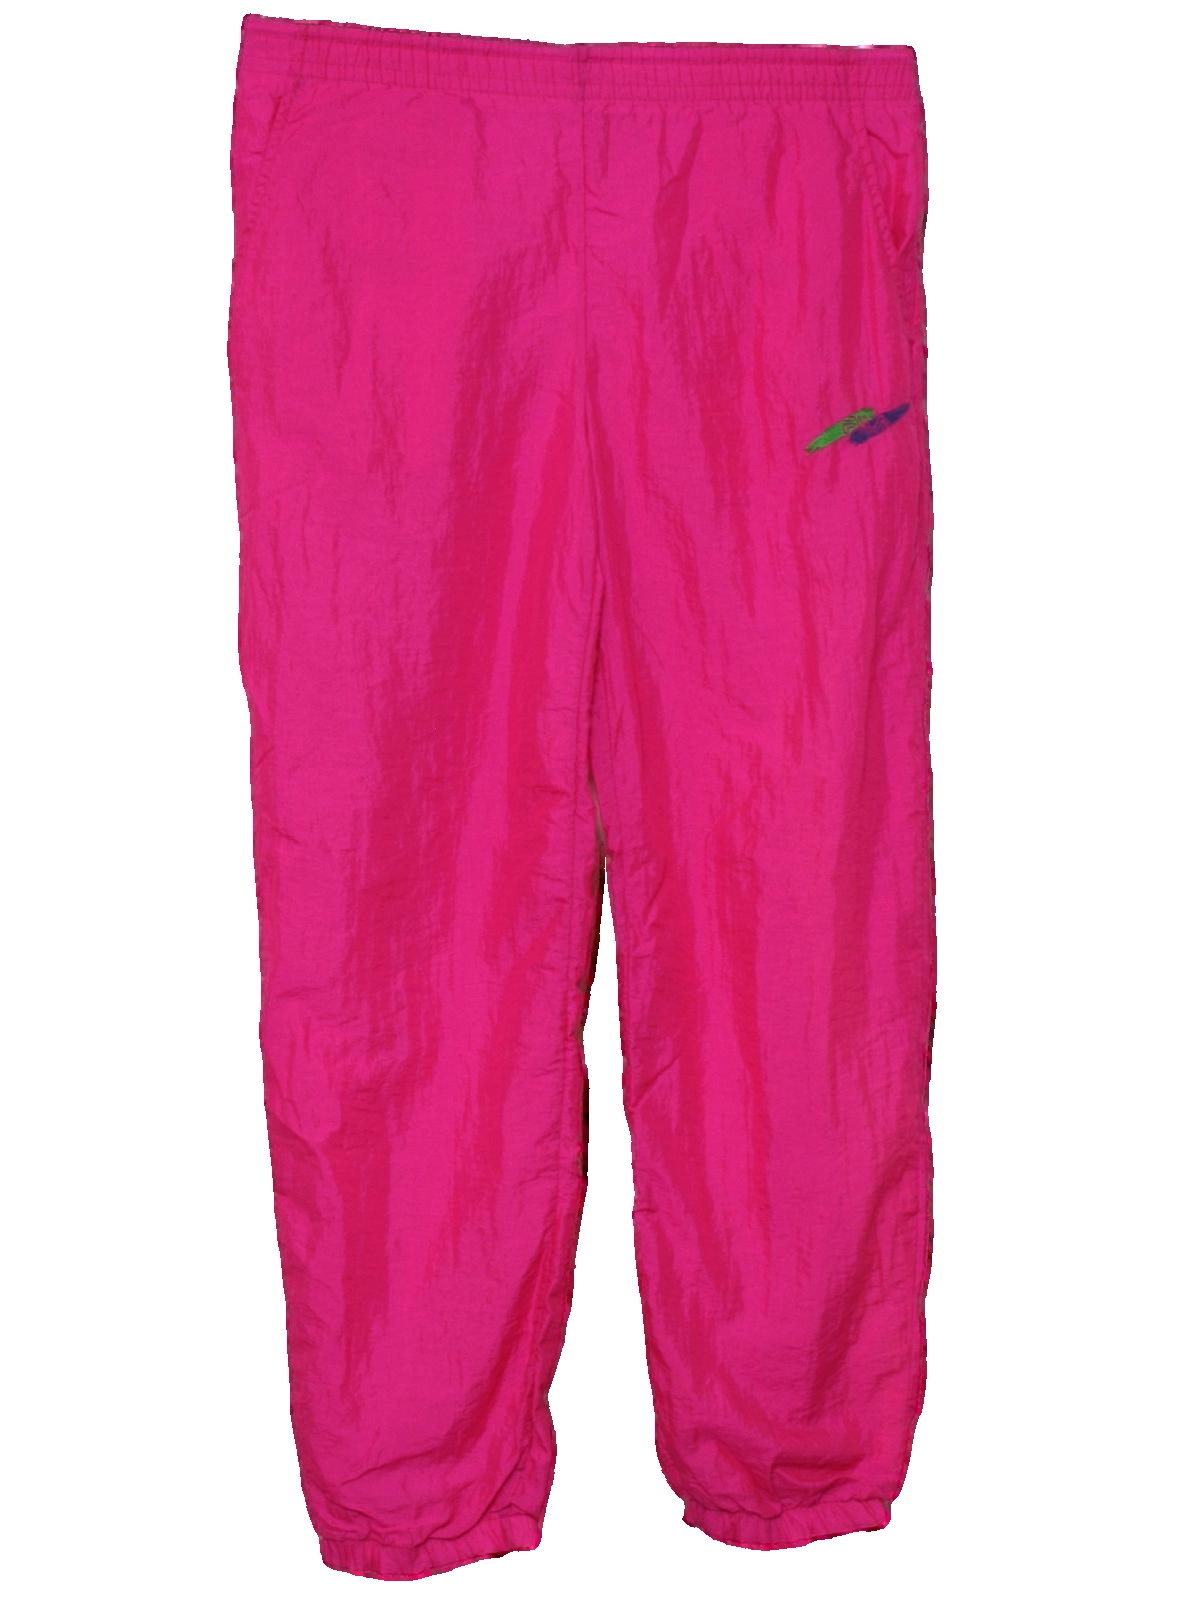 1980's Fila Womens Totally 80s Style Neon Baggy Track Pants